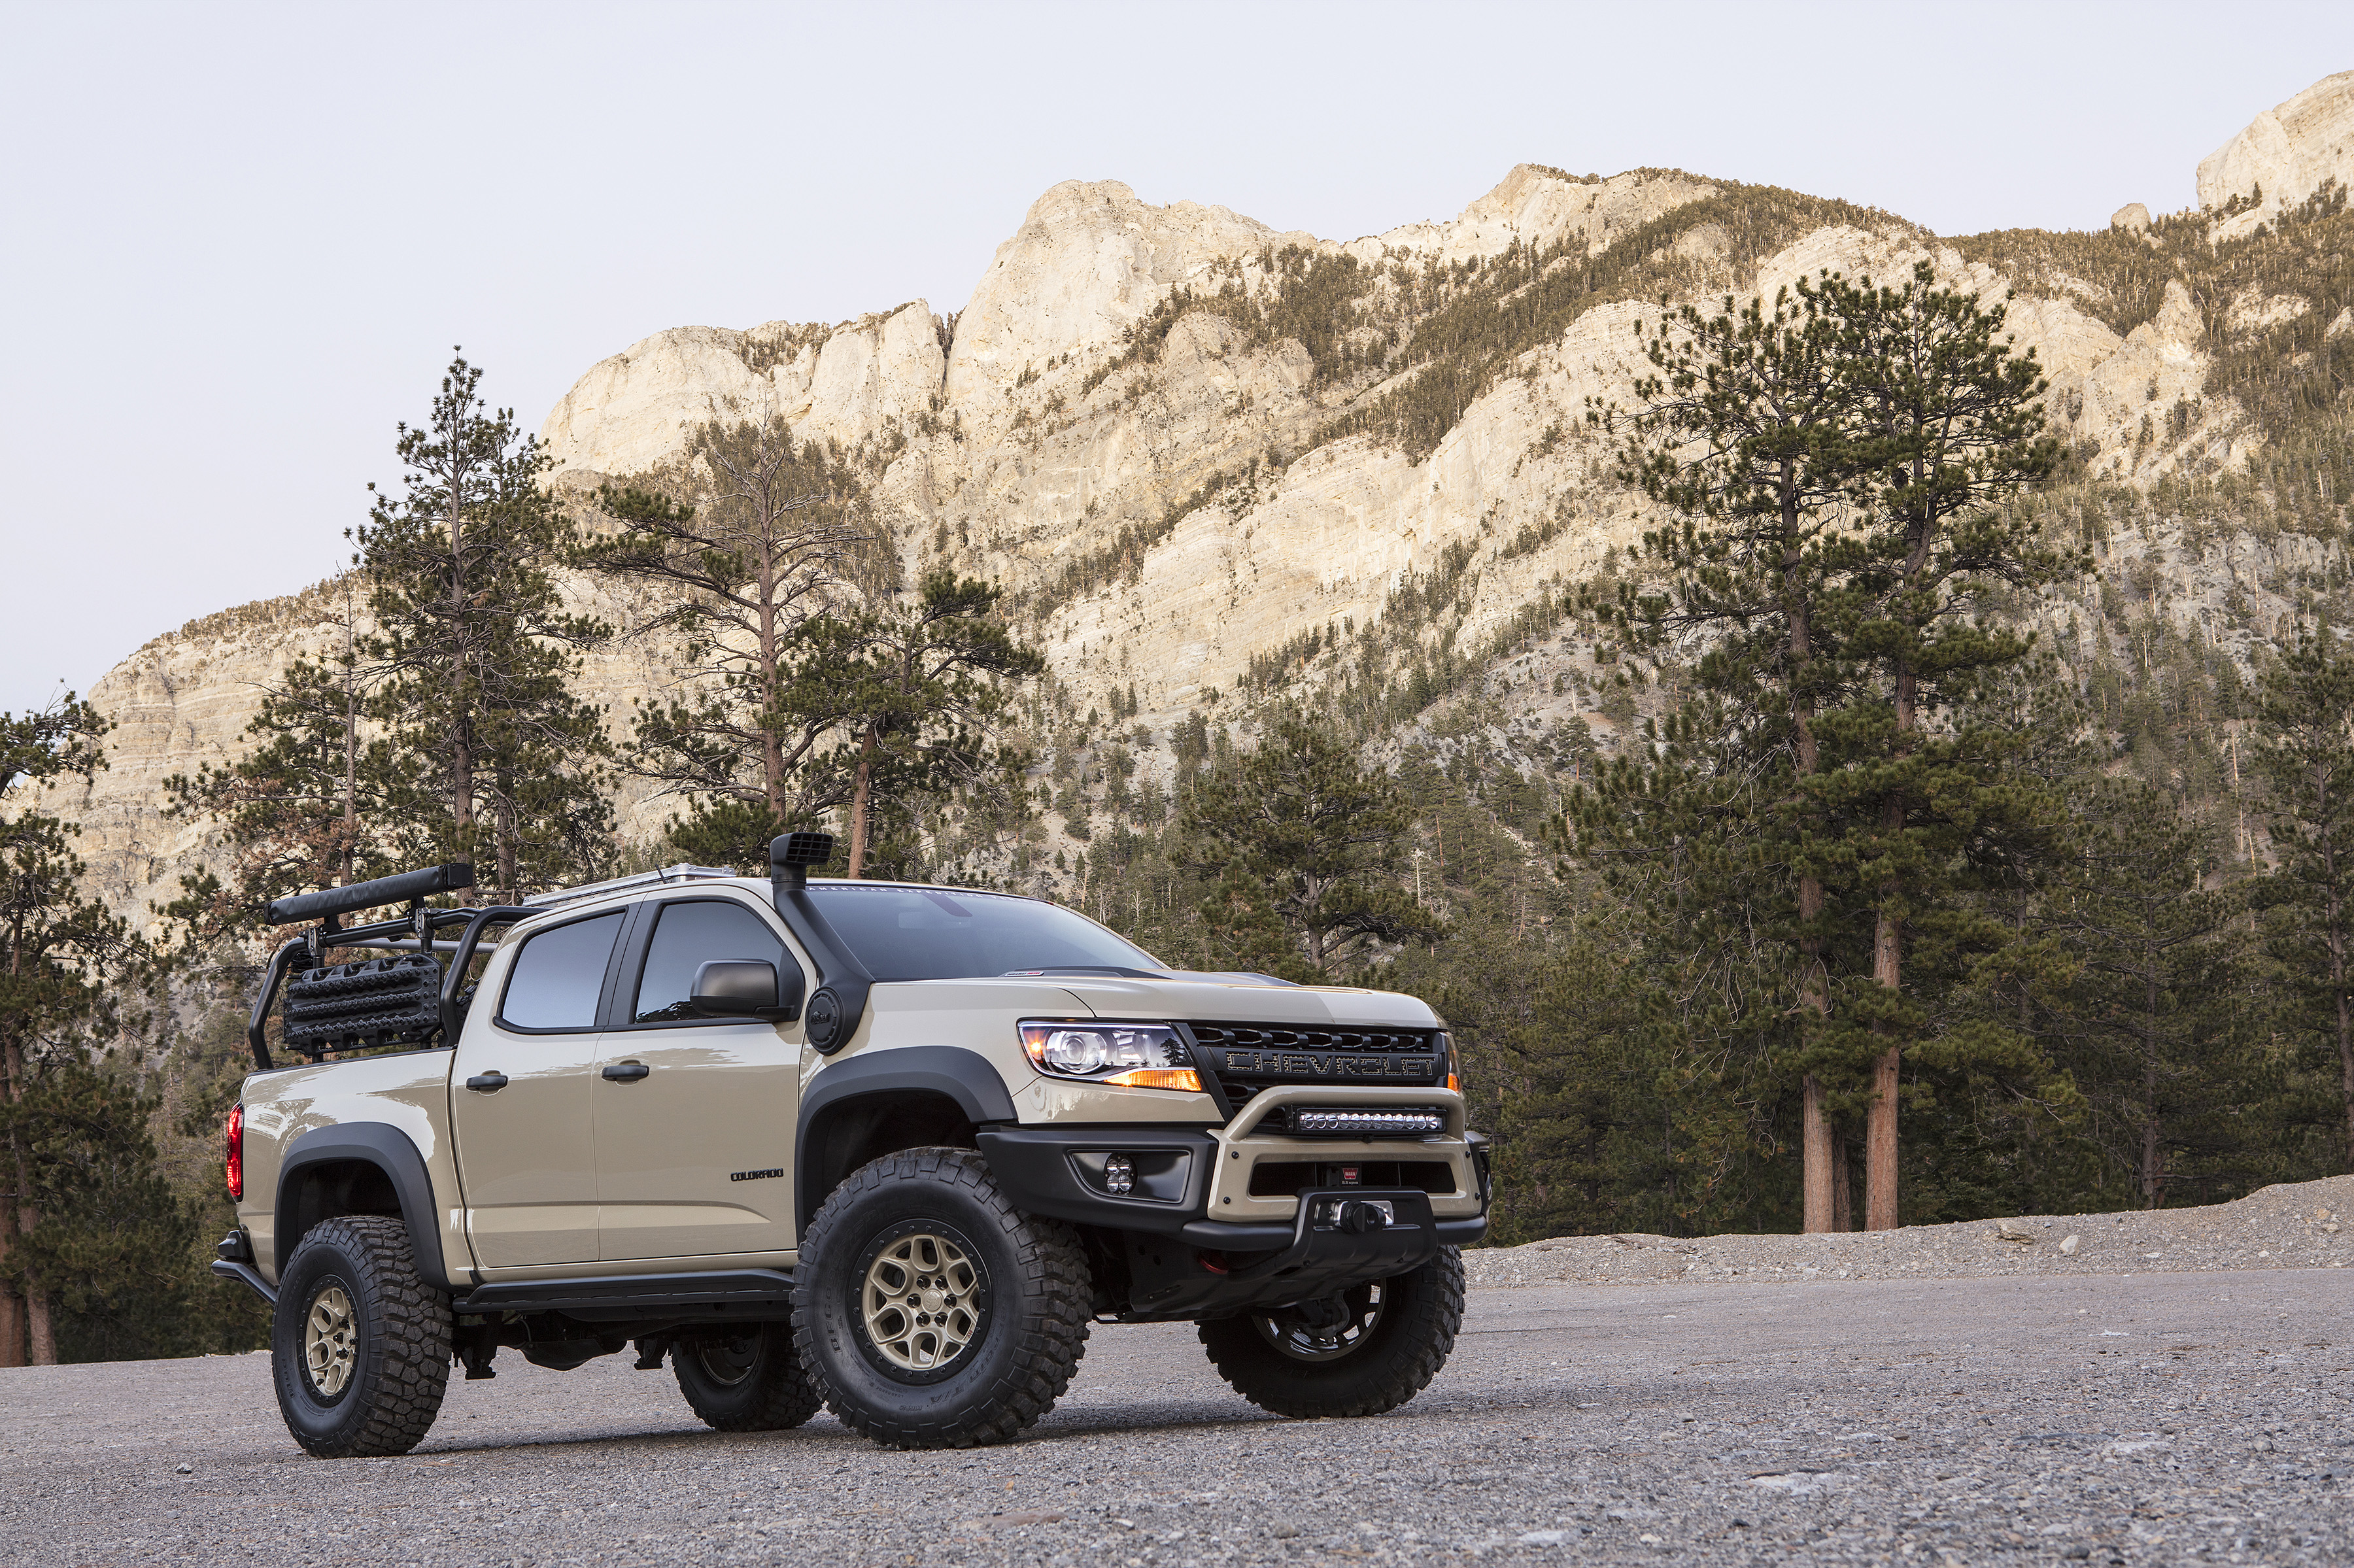 Colorado Zr2 Concept And Development Truck Take Capability To The Next Level